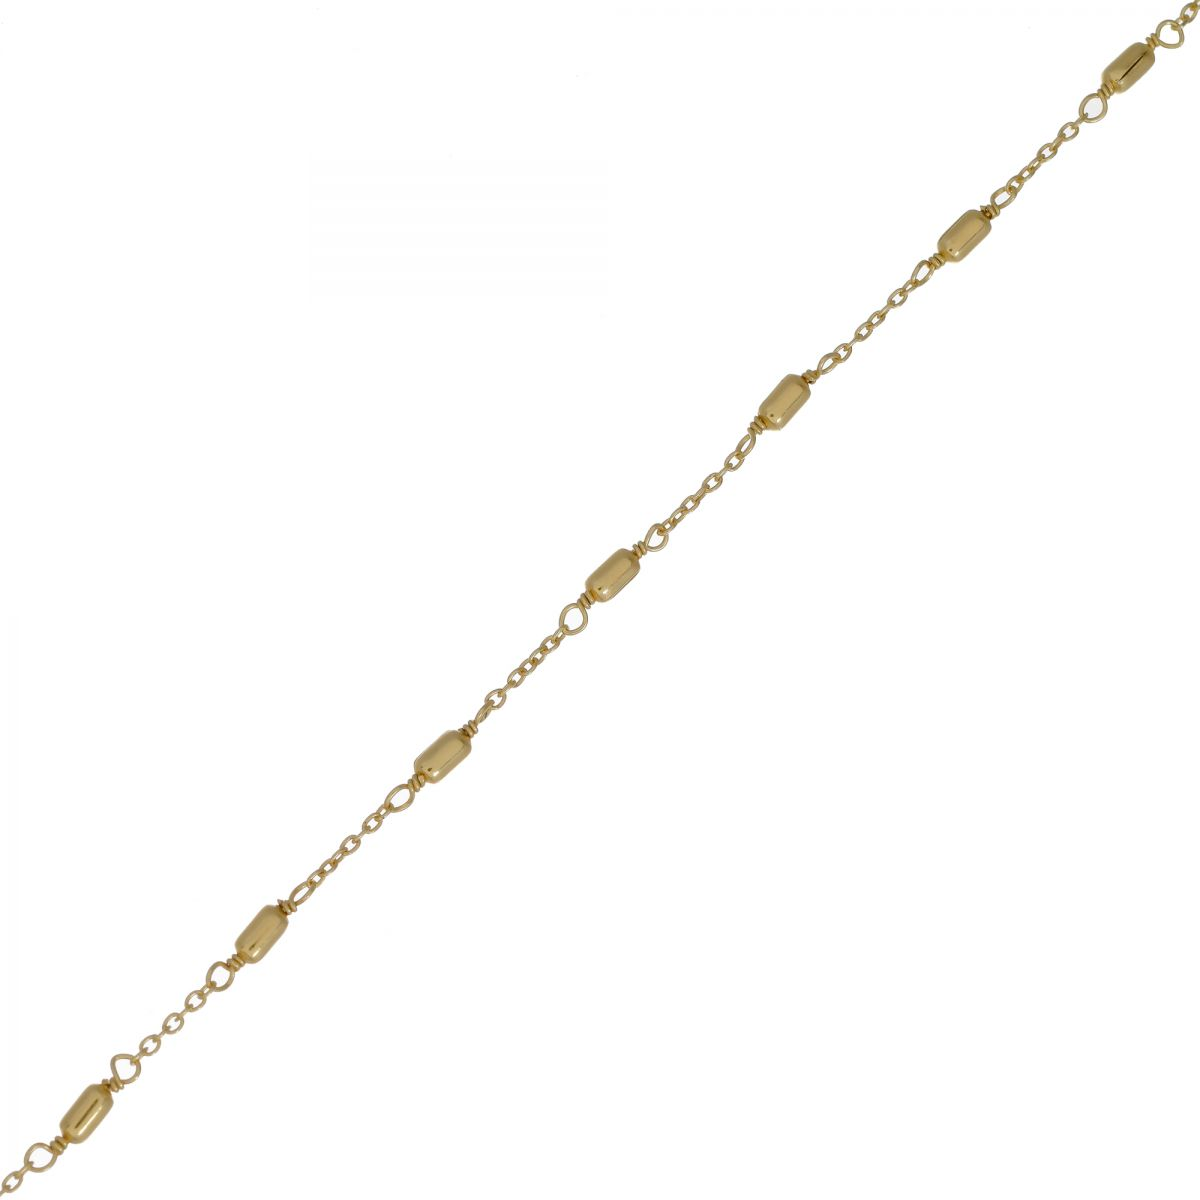 f bracelet sticks gold plated